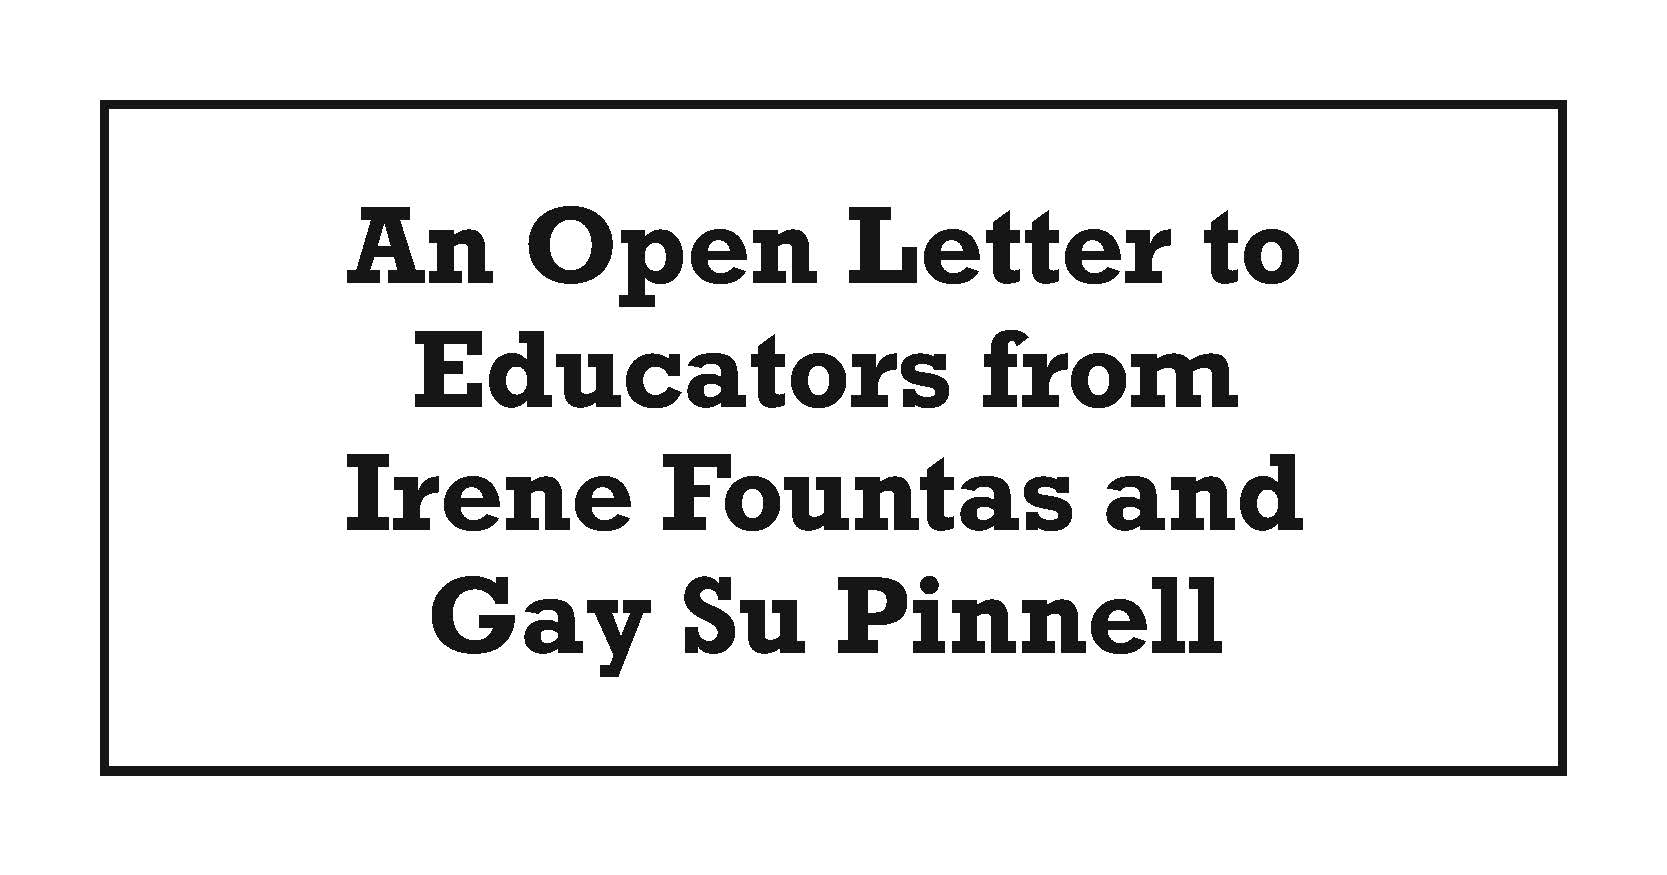 FP_Remote_Learning_Open_Letter_Blog_Graphic